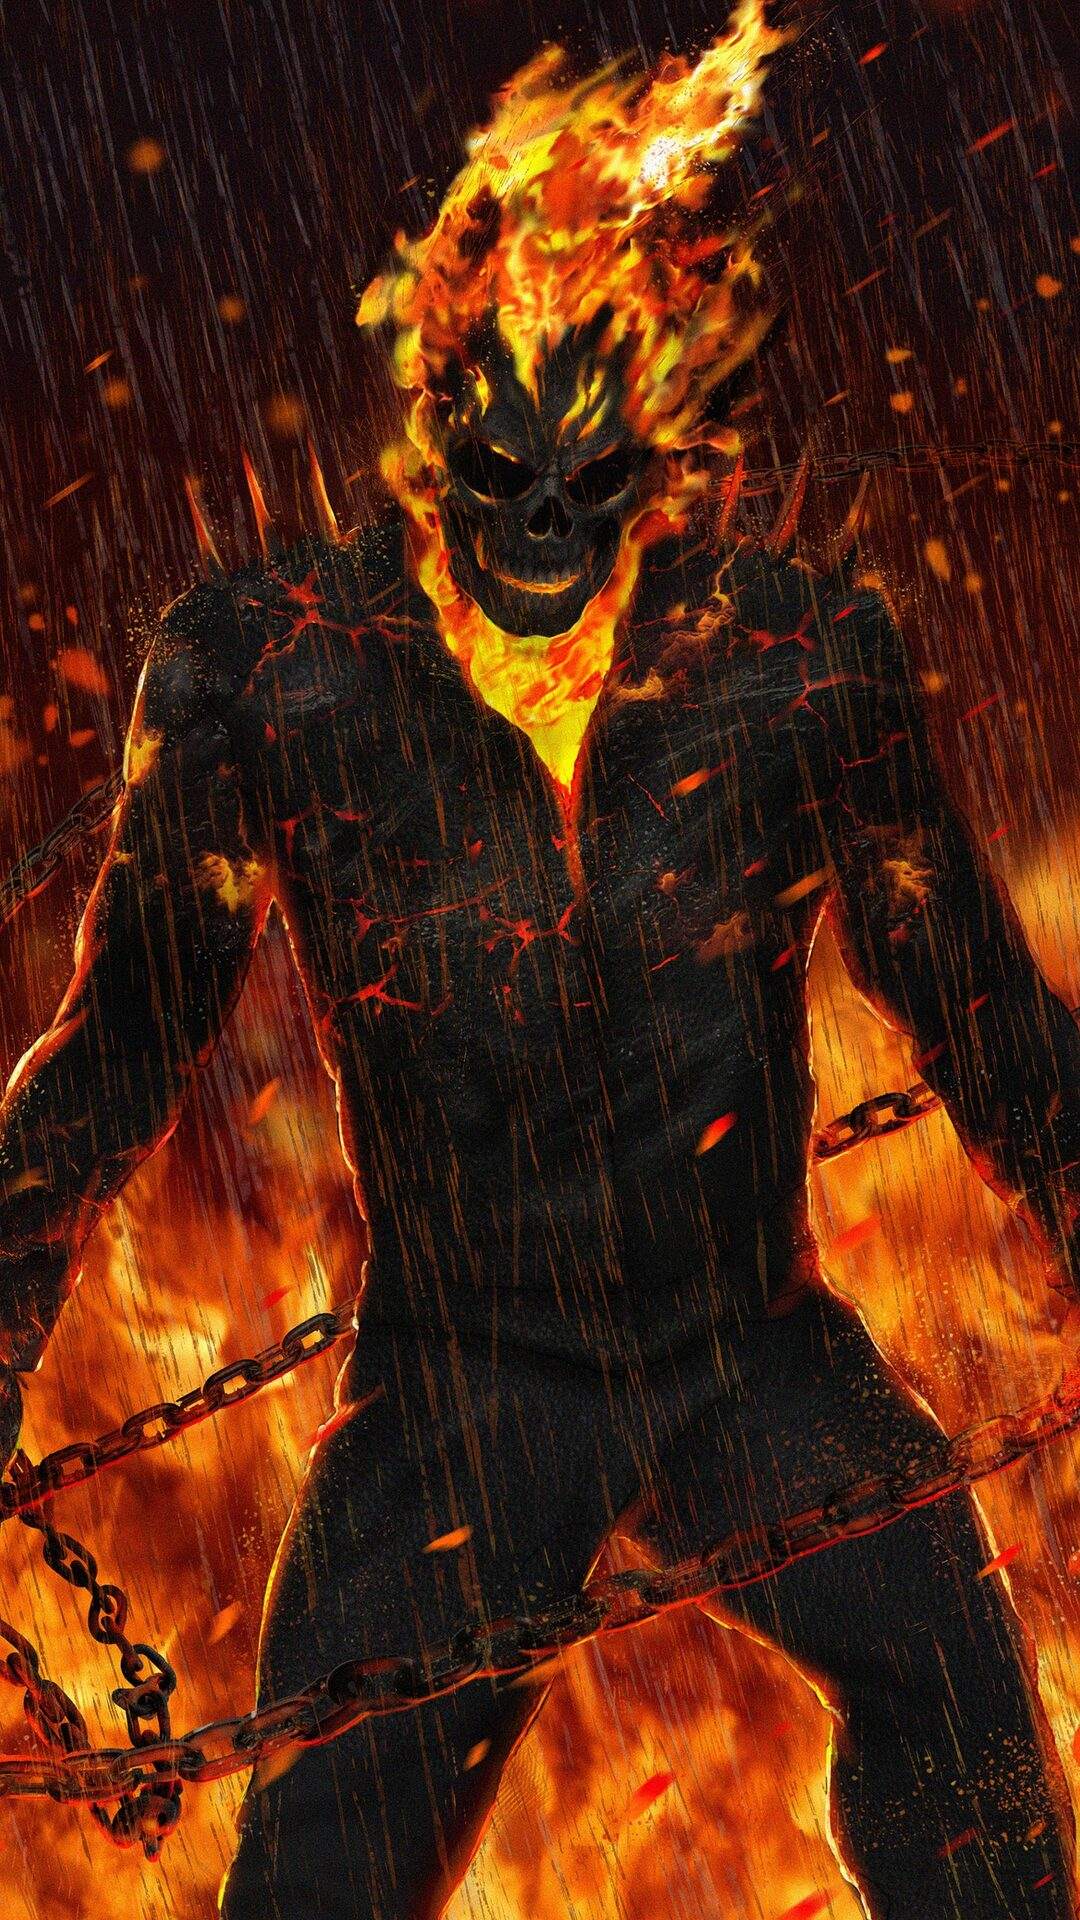 ghost-rider-artwork-hd-kv.jpg